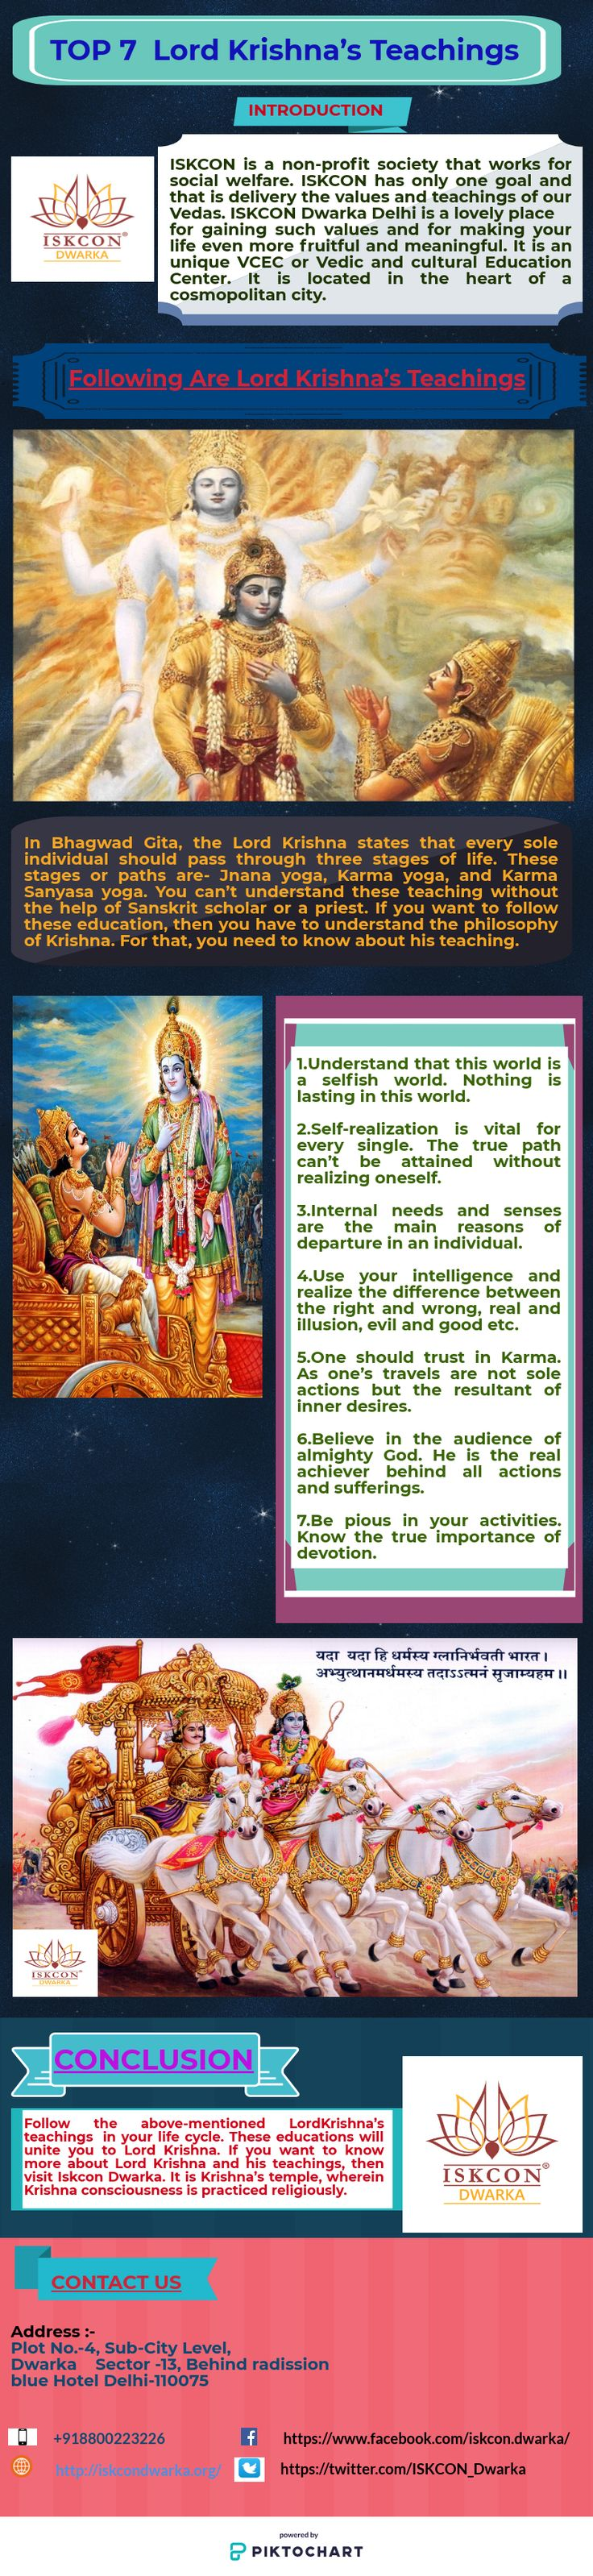 In Bhagwad Gita, the Lord Krishna states that every single should pass over and done with three stages of life. These stages or paths are- Jnana yoga, Karma yoga, and Karma Sanyasa yoga. You can't understand these teaching without the assistance of Sanskrit scholar or a priest. If you want to follow these teaching, then you have to understand the philosophy of Krishna. For that, you need to know about his teaching. Here are the seven Lord Krishna's teachings that everyone should know.